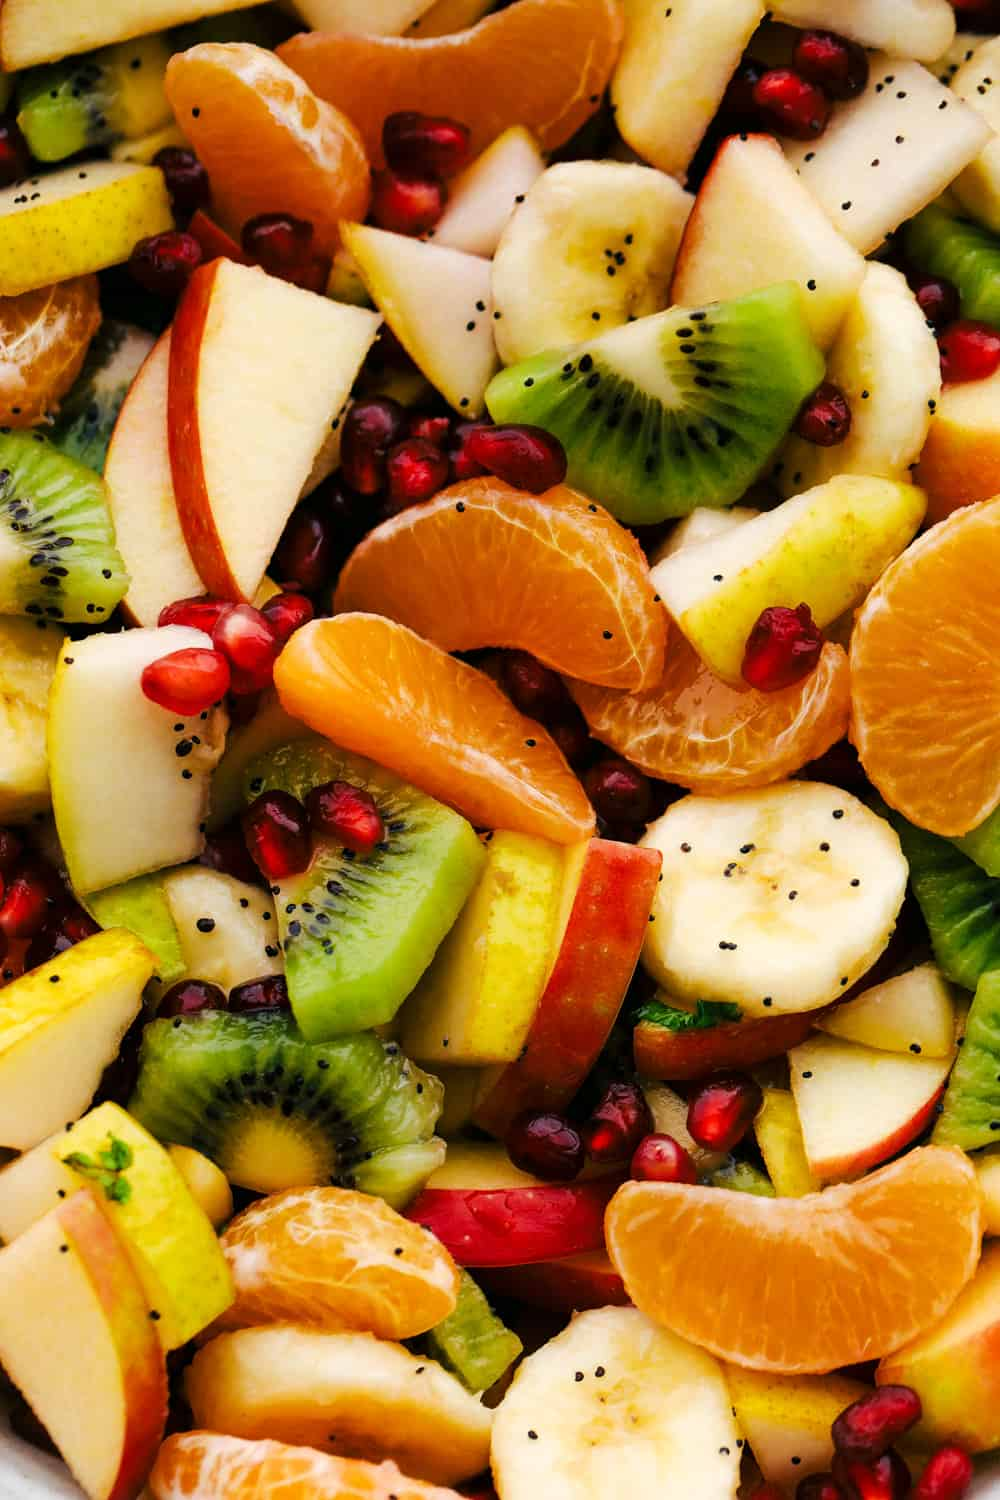 Close up of kiwi, apples, oranges, pomegranates and honey lime dressing.